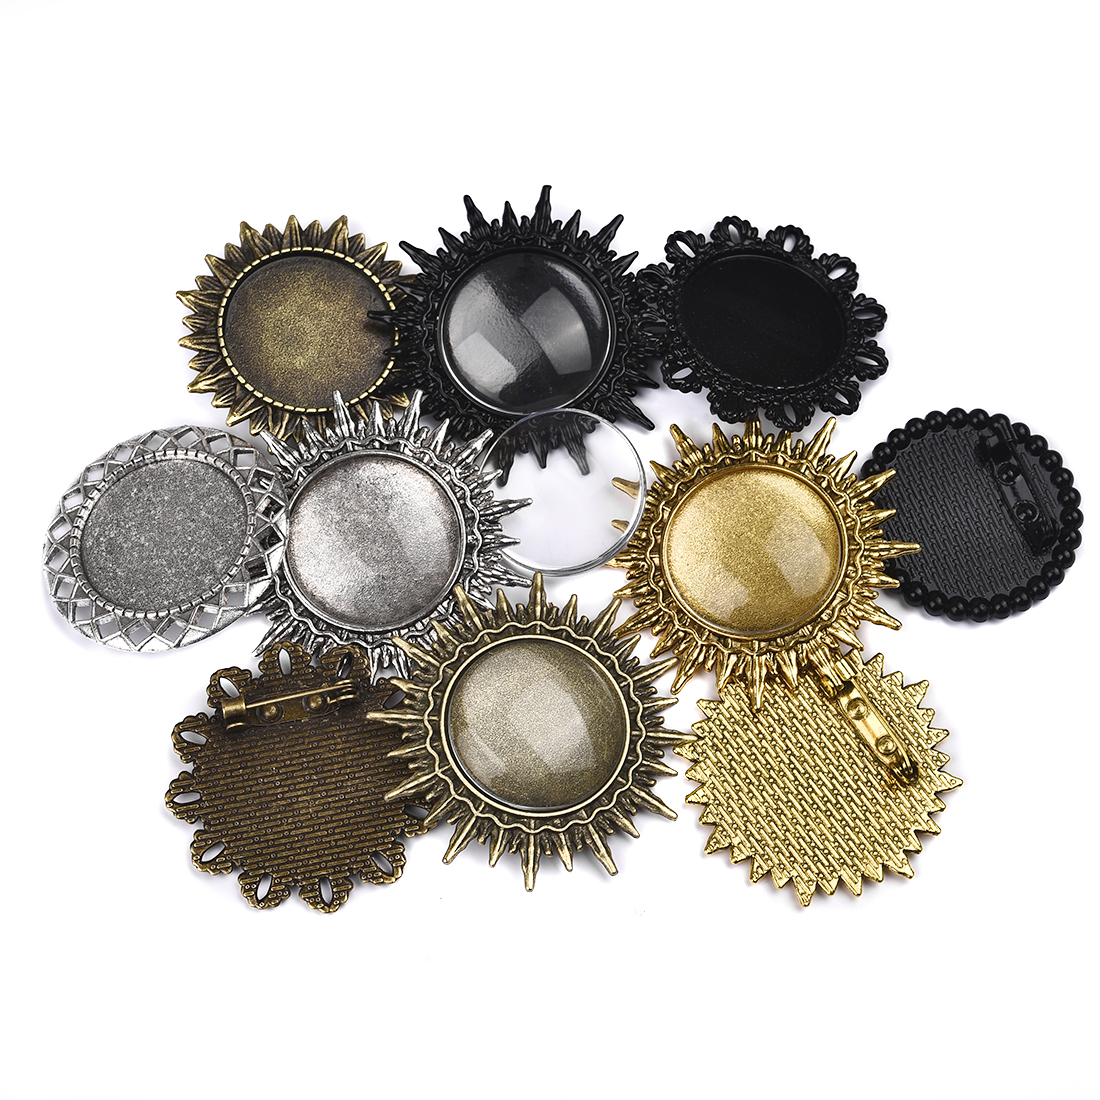 10pcs/Set Plated Pin Brooch Base Setting Pendant With Glass <font><b>Cabochons</b></font> <font><b>18x25mm</b></font> 30x40mm Round <font><b>Oval</b></font> Shaped Blank Jewelry Bases DIY image